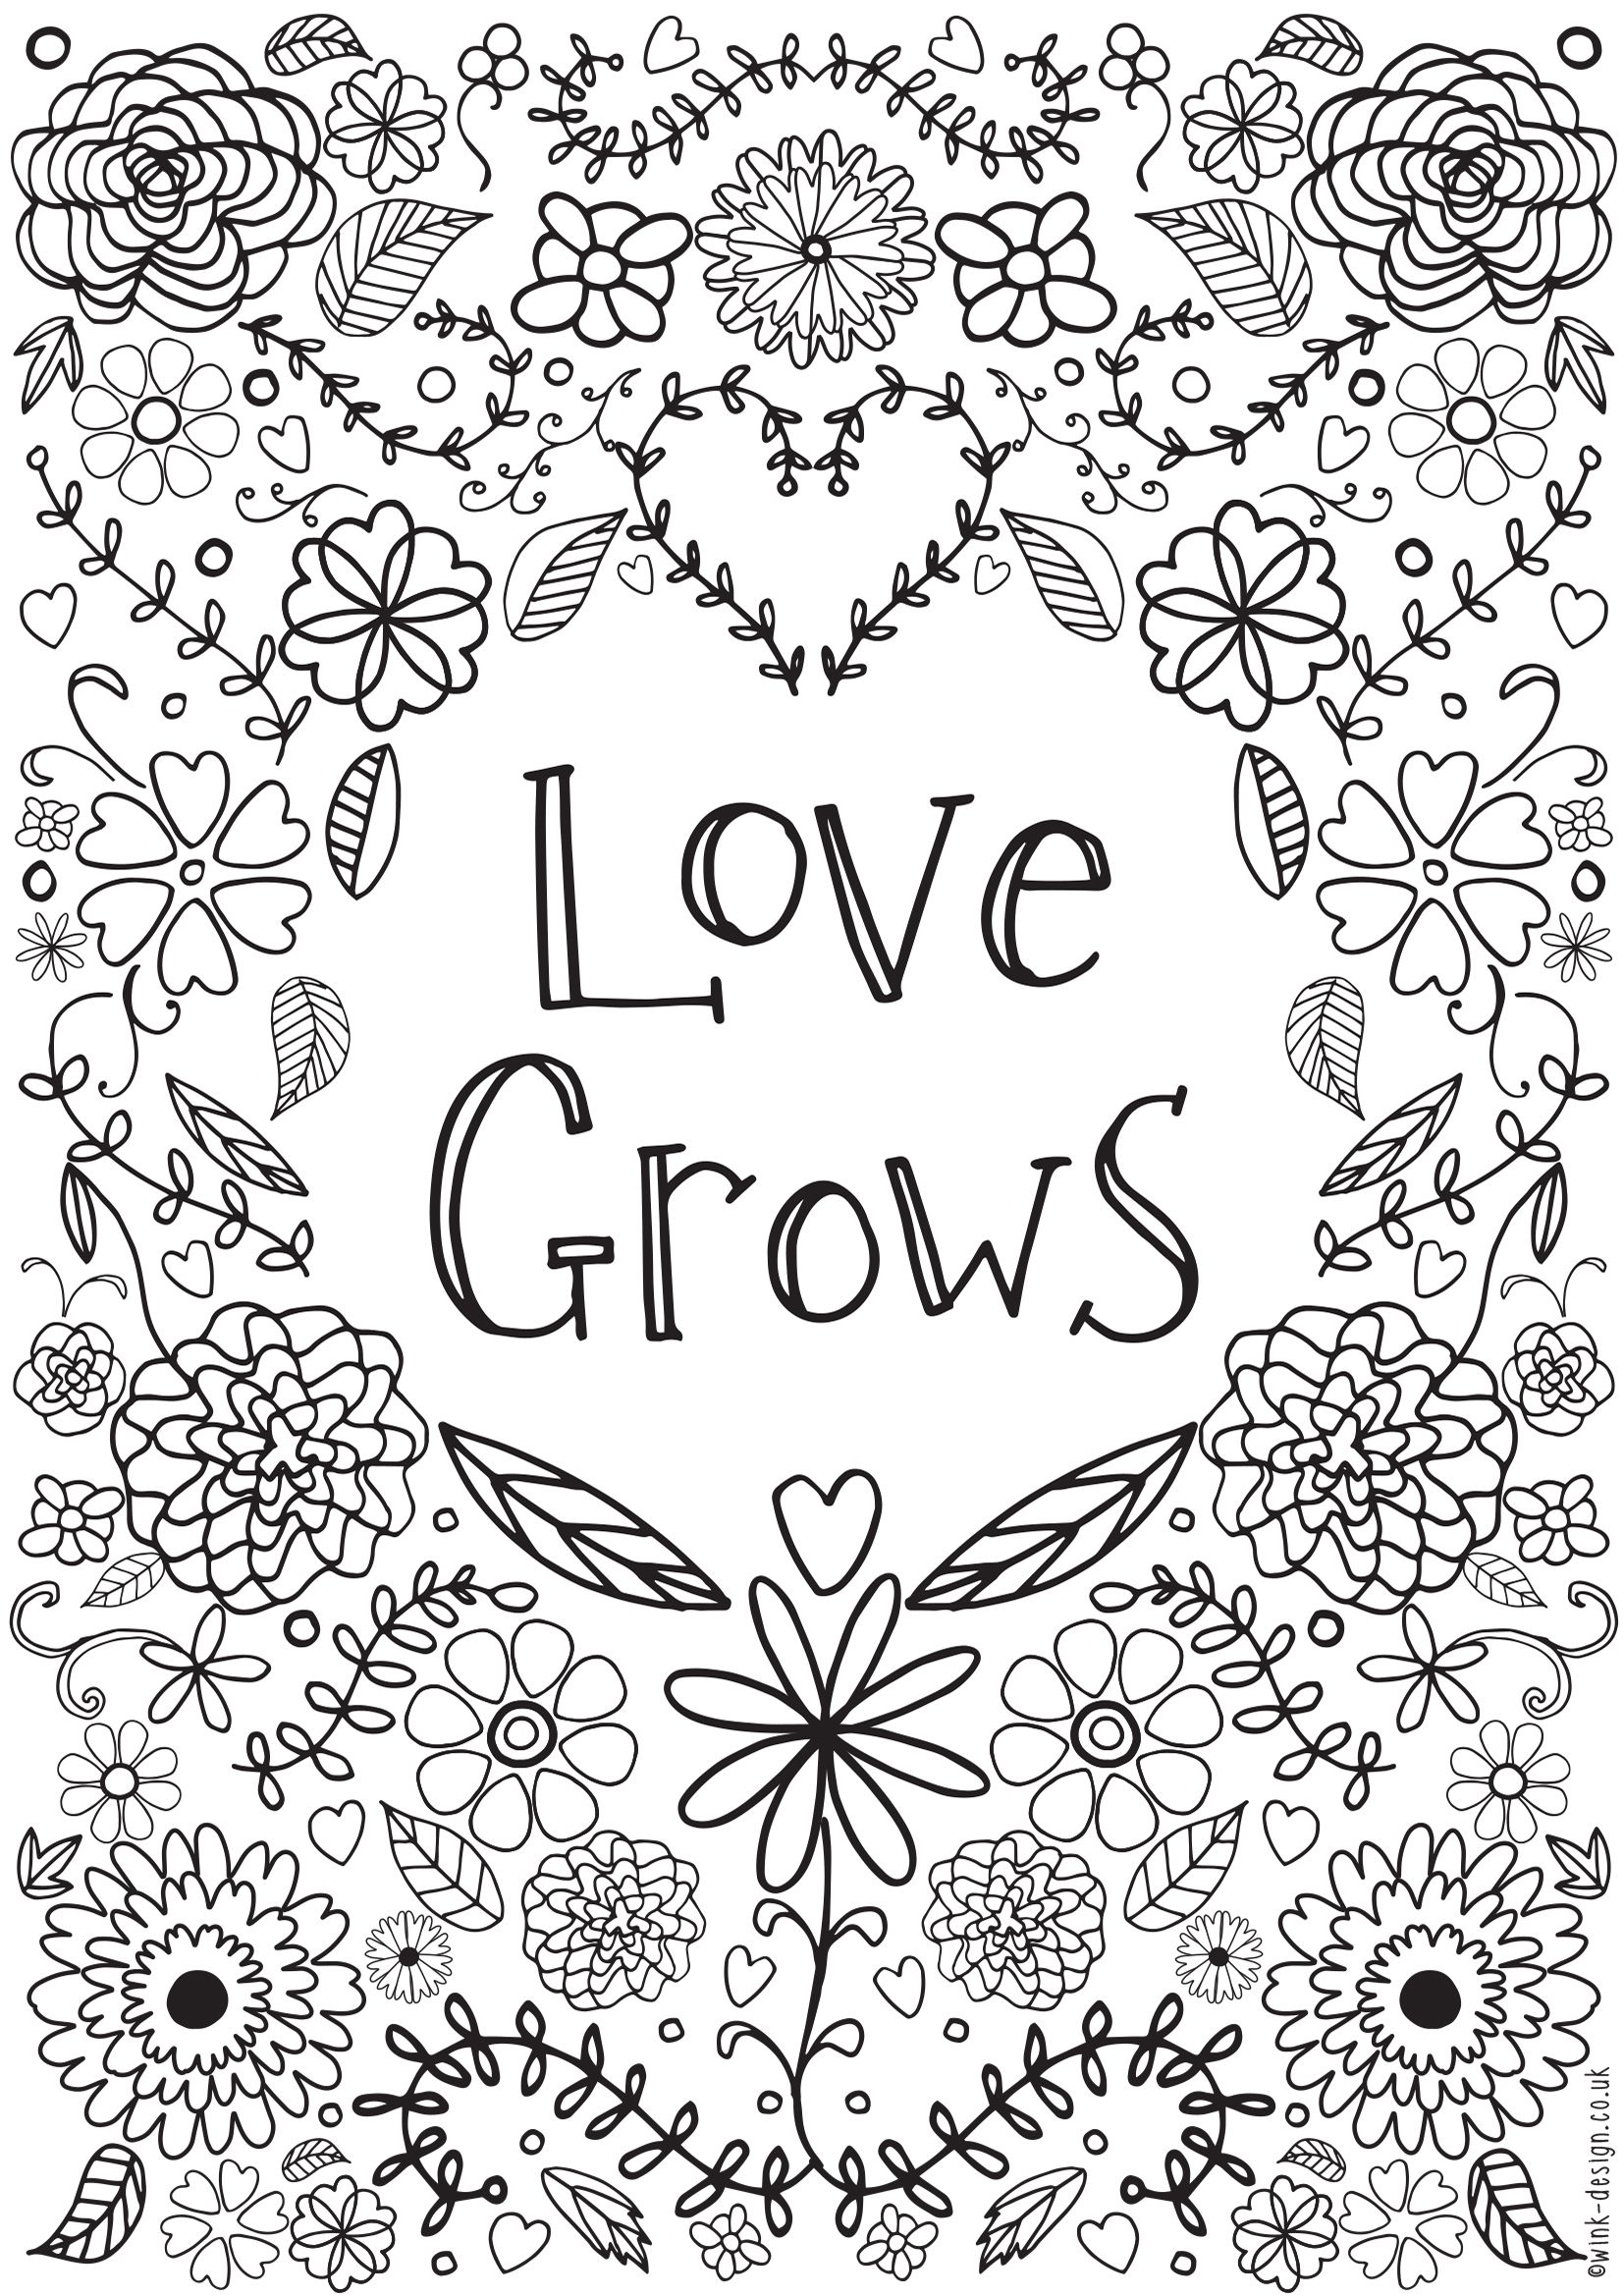 Printable coloring pages love - Free Printable Adult Colouring Sheet With Inspirational Quote